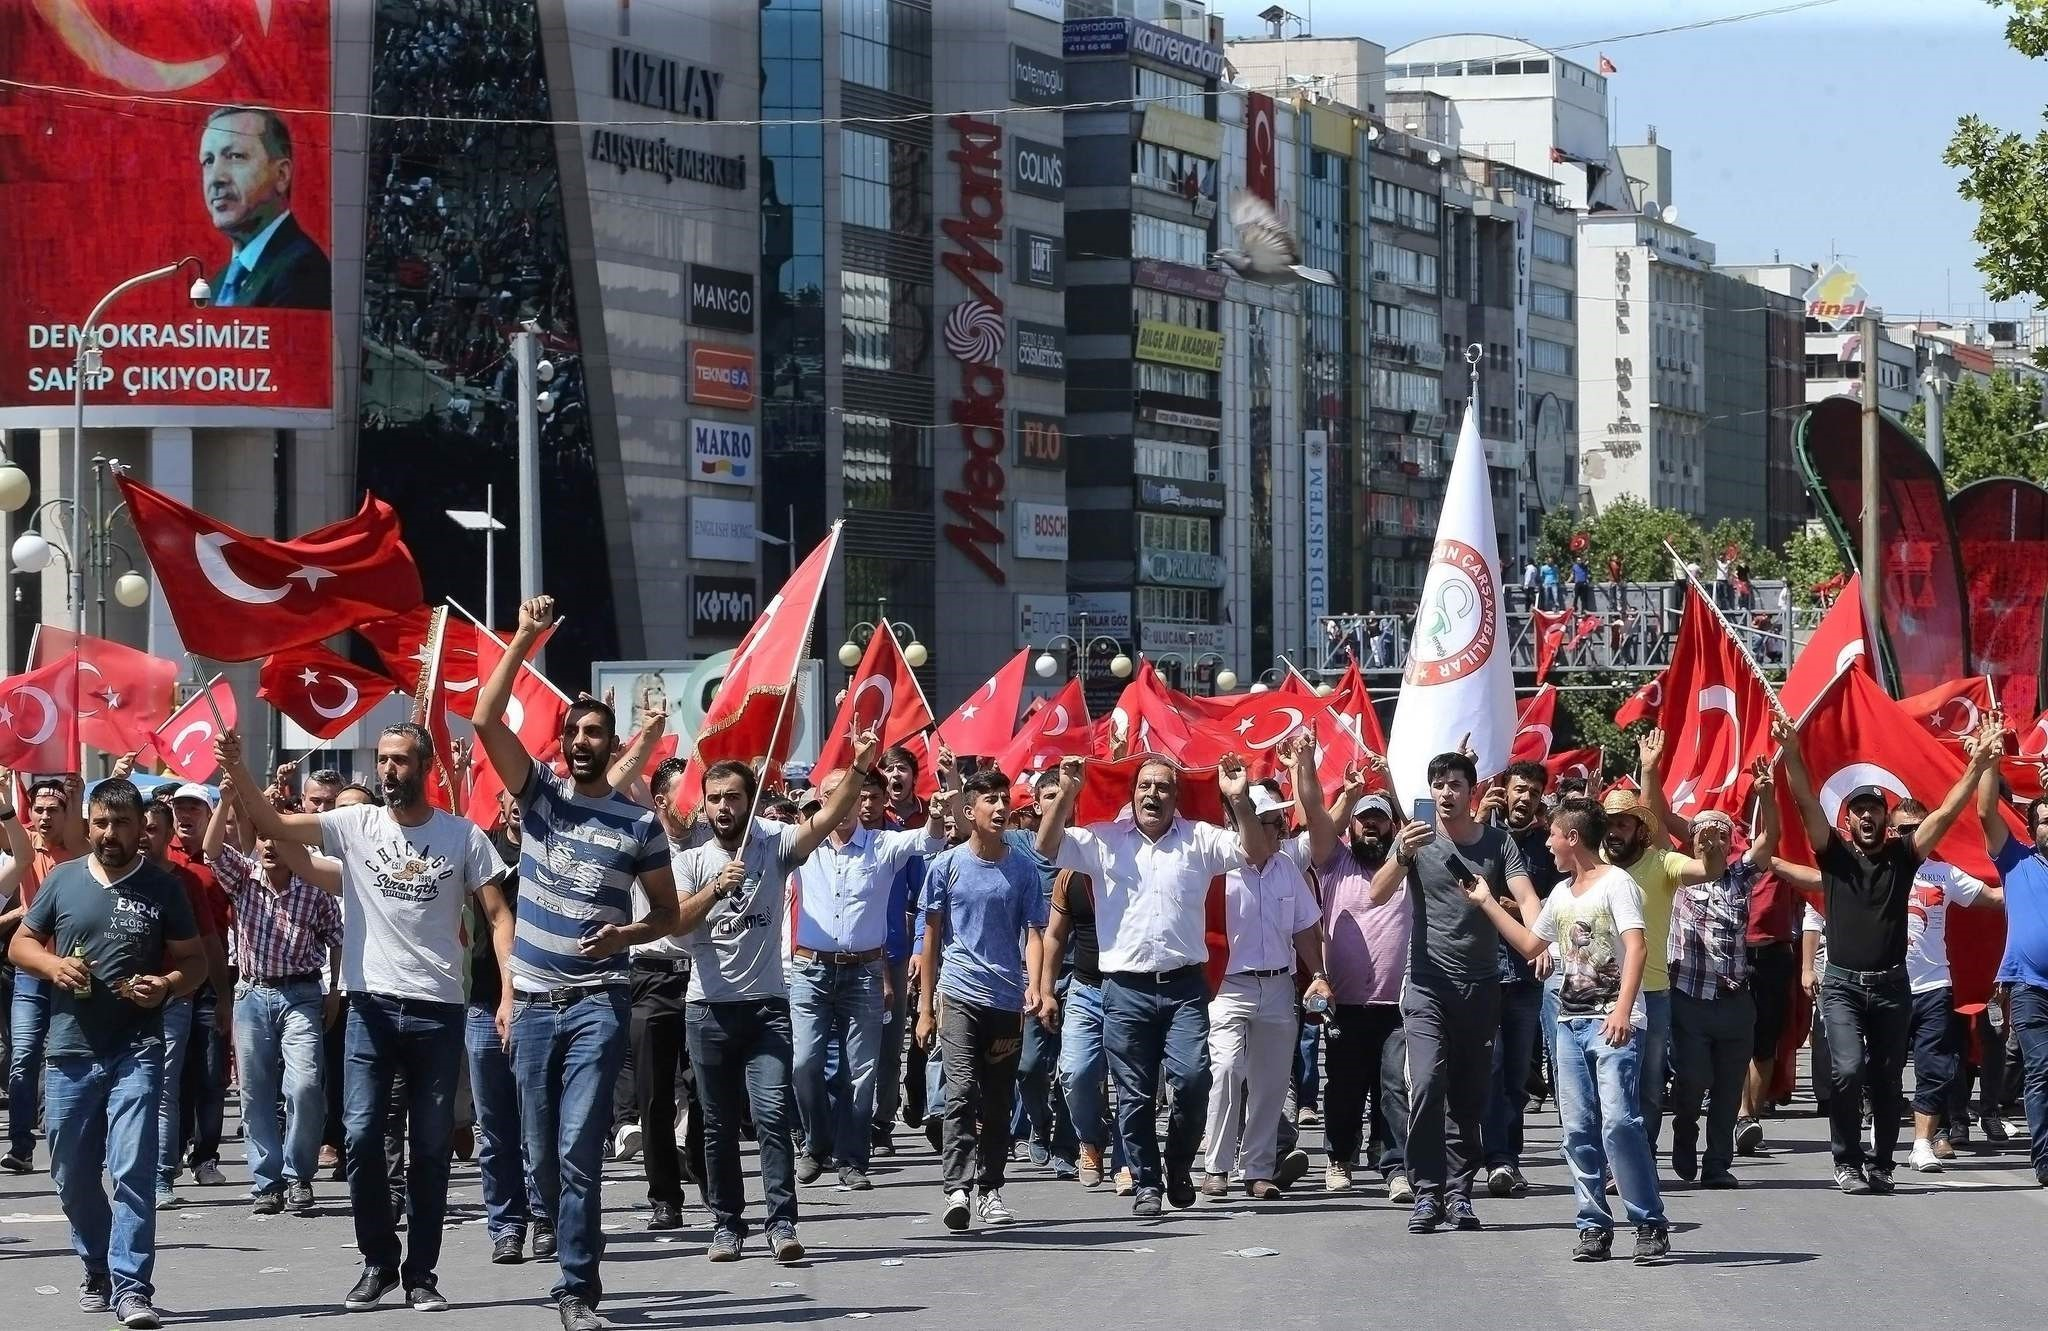 People wave national flags as they march from Kizilay square to Turkish General Staff building to react against military coup attempt, in Ankara, on July 16, 2016.